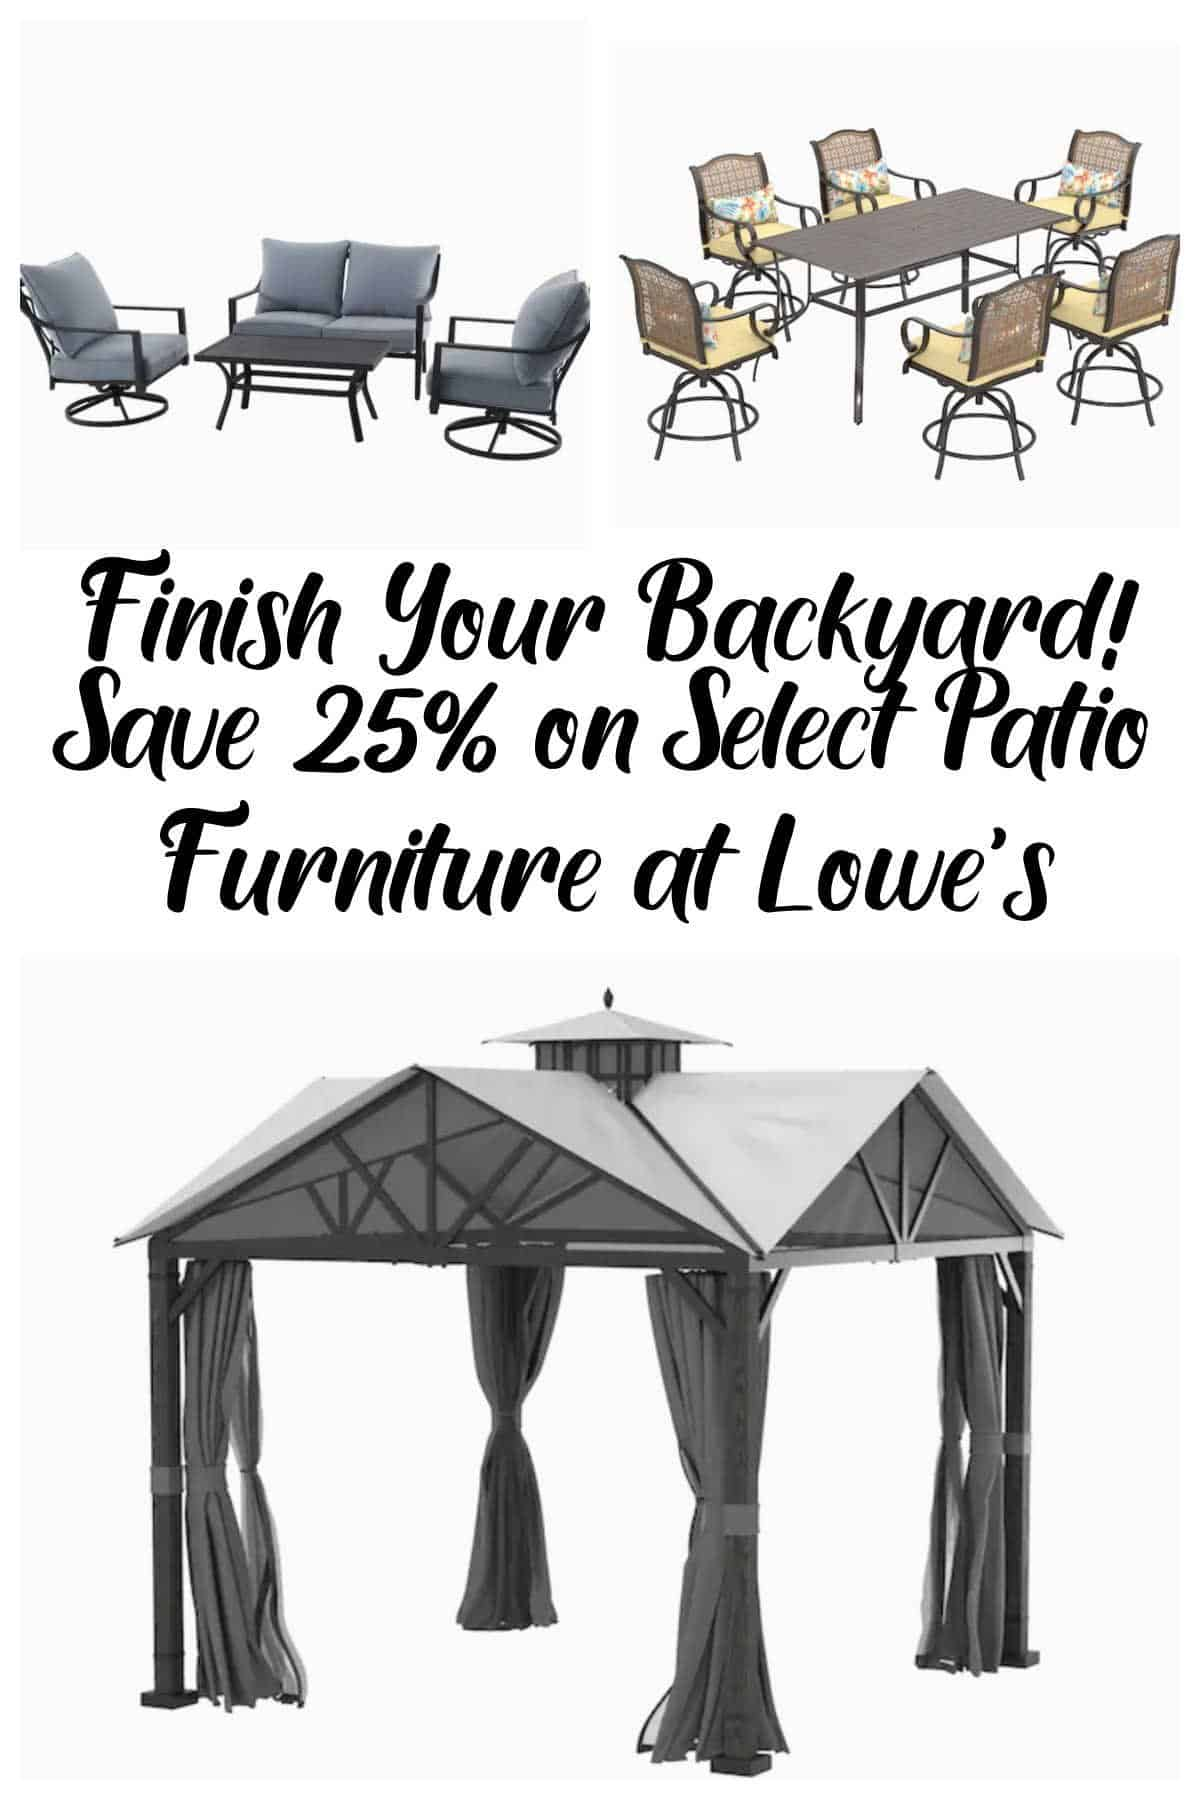 Save 25% on Select Patio Furniture at Lowe's